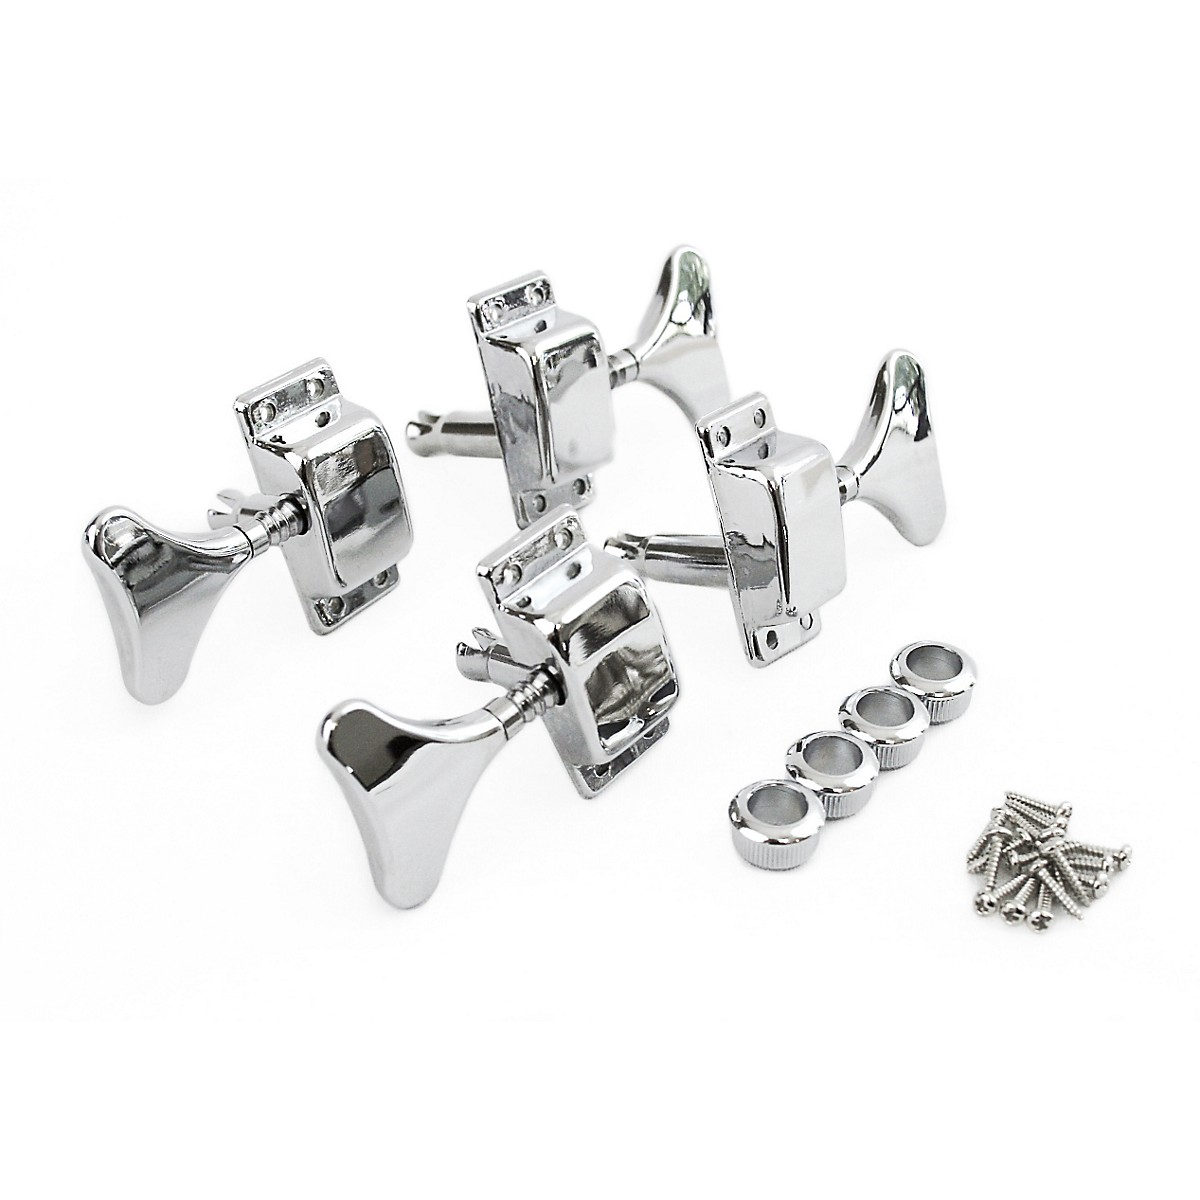 Proline 2+2 Bass Tuning Machines